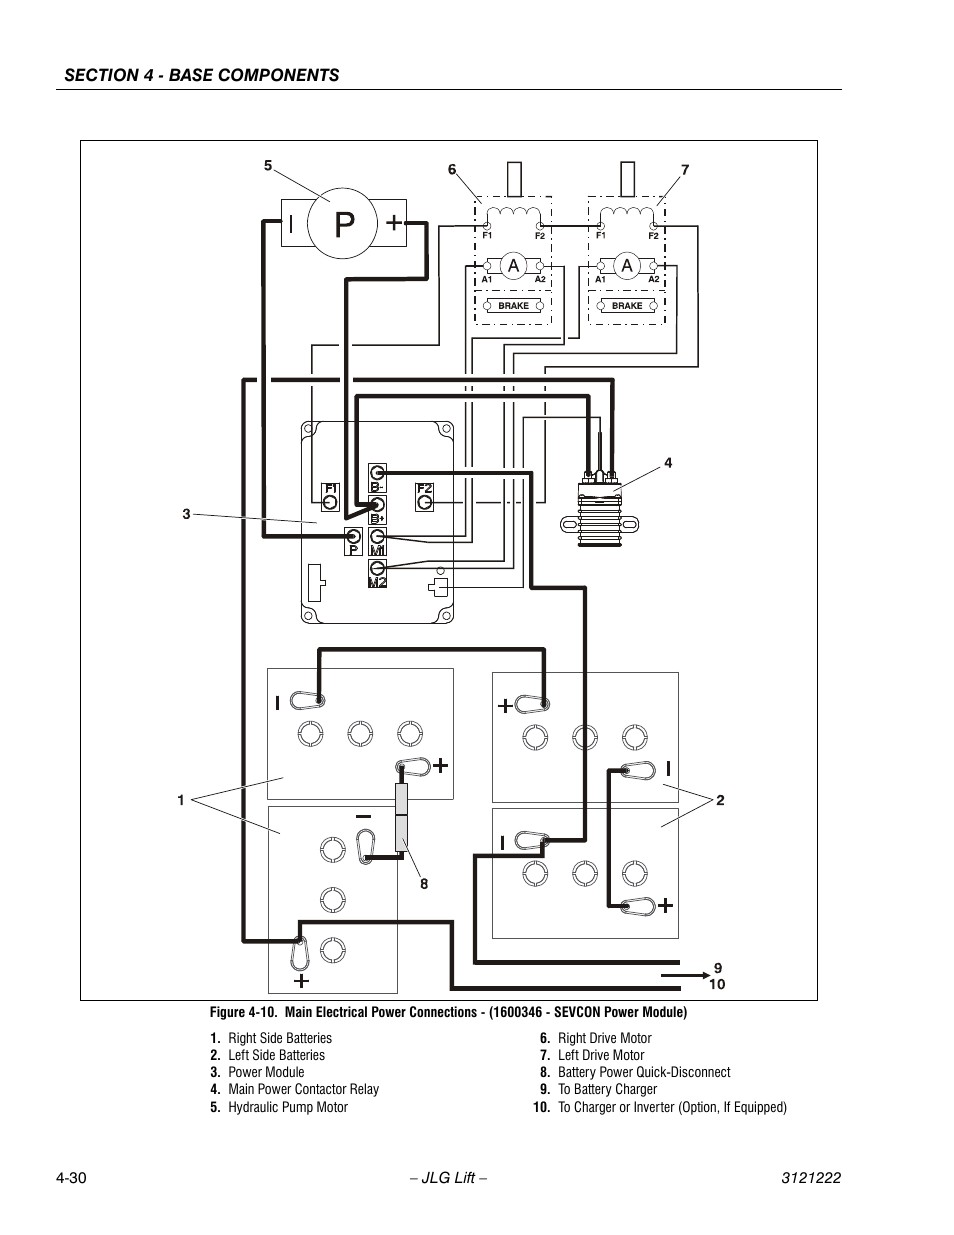 DIAGRAM CLEARVIEW WIRING TD88 - Auto Electrical Wiring Diagram